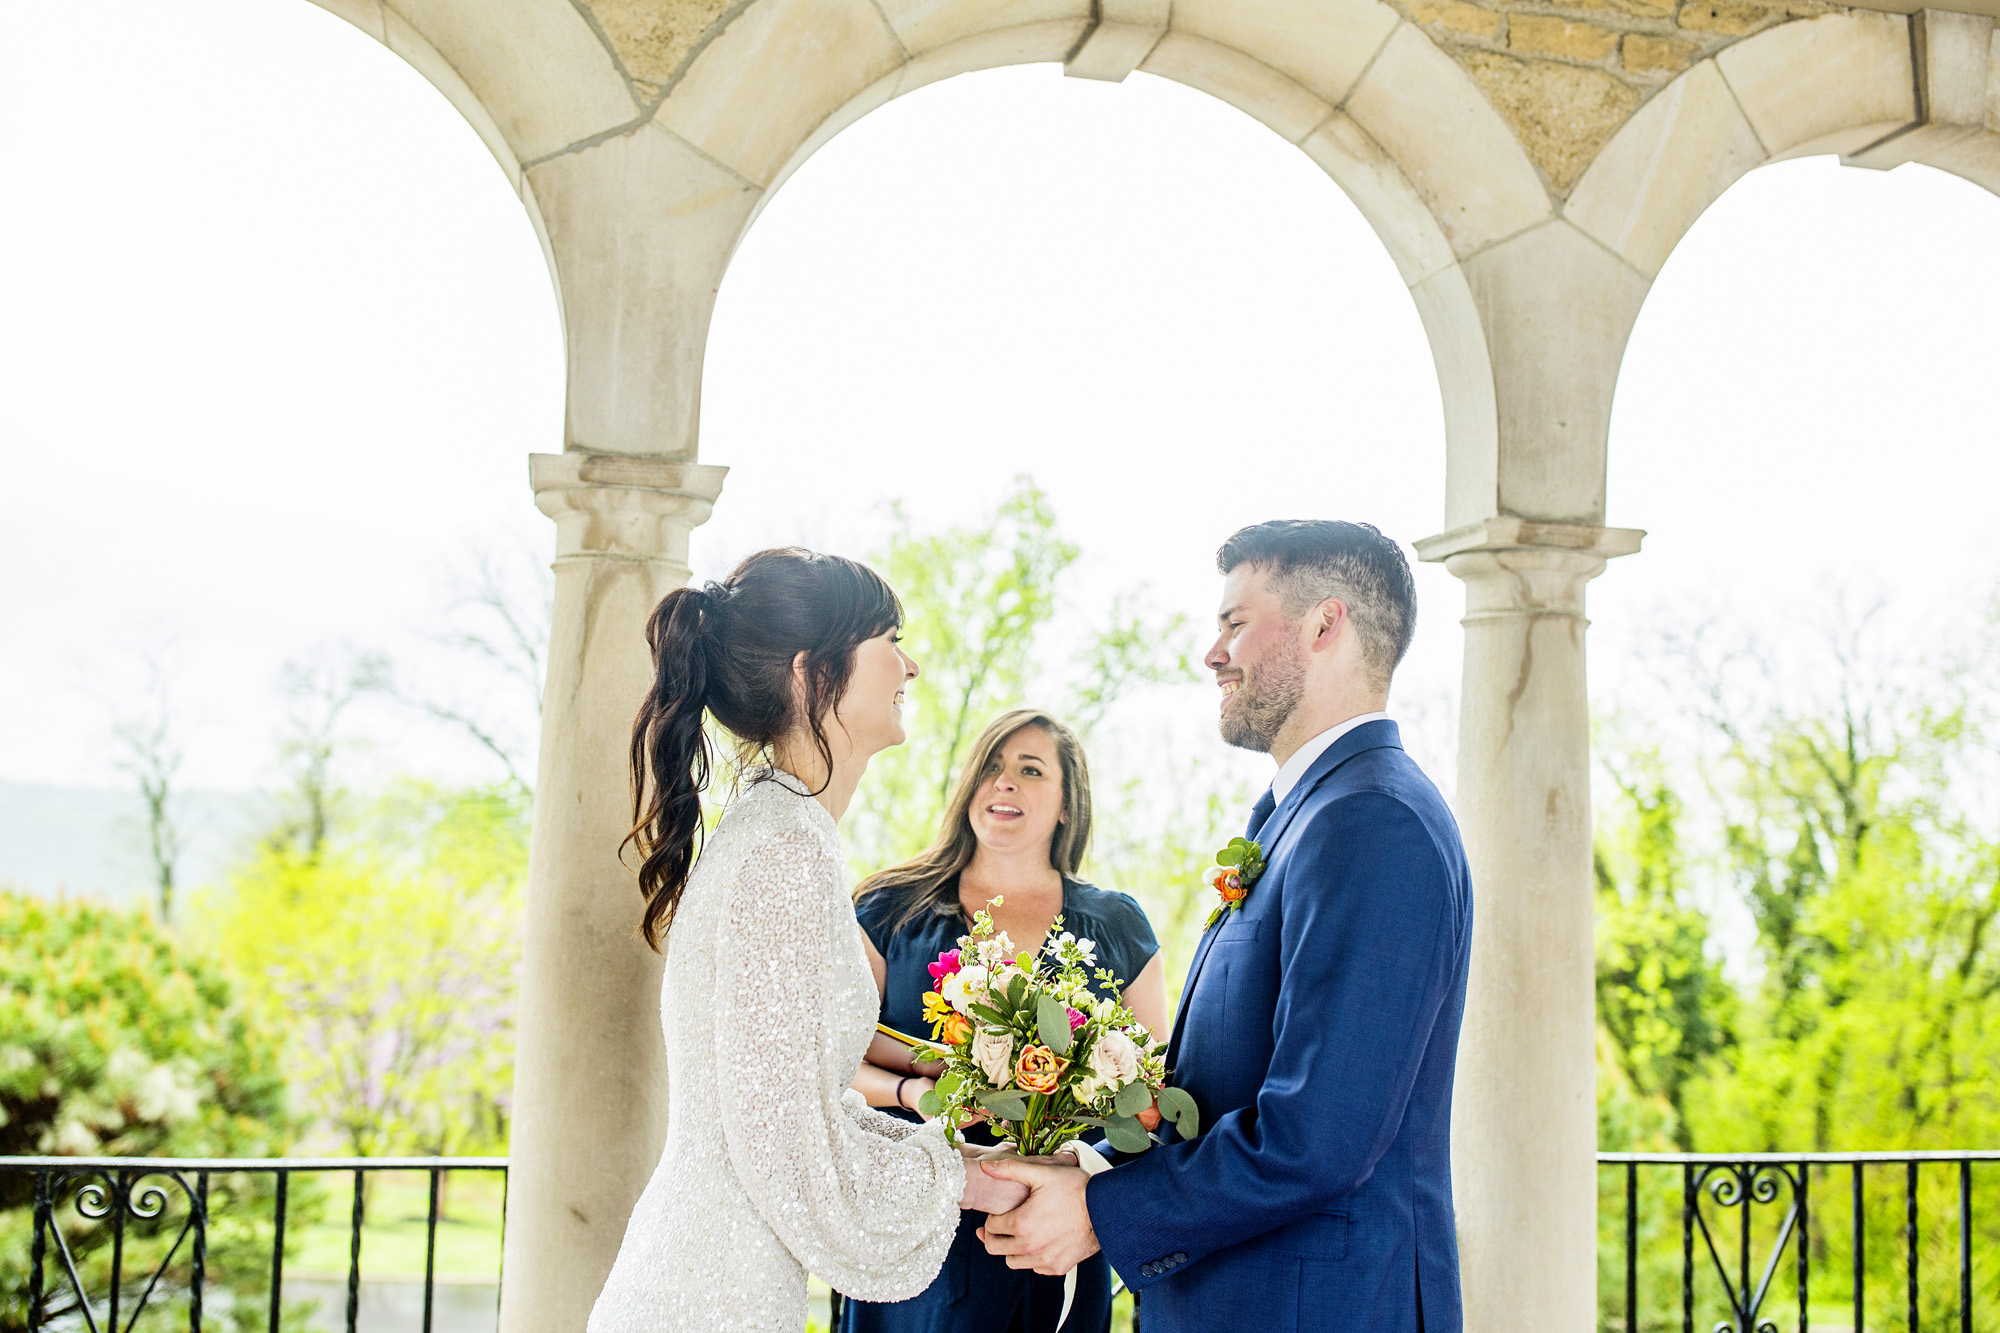 Seriously_Sabrina_Photography_Cincinnati_Ohio_Alms_Park_Elopement_Lauren_Aaron_21.jpg